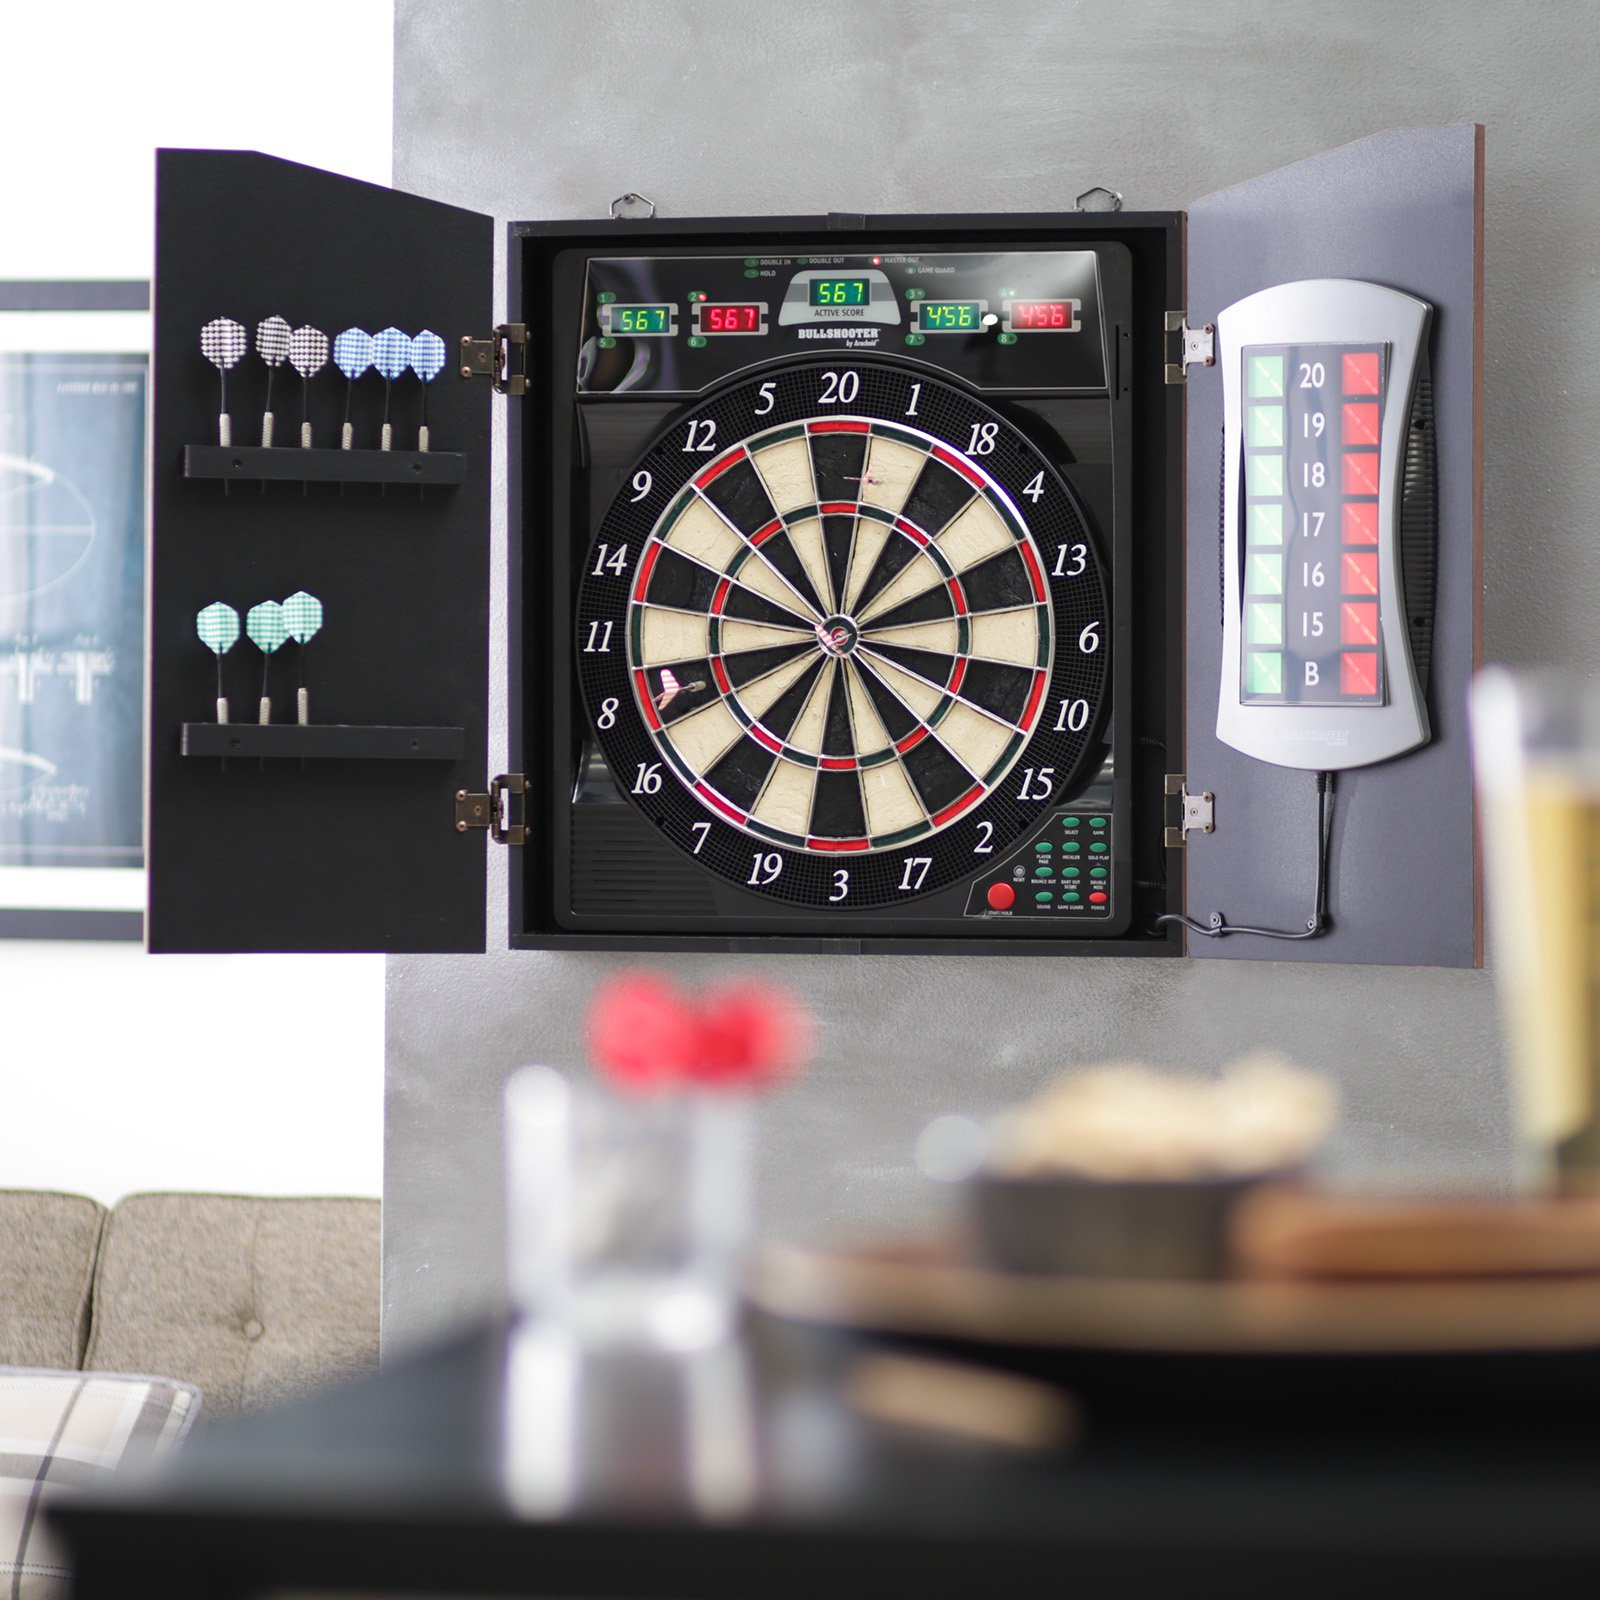 Bullshooter by Arachnid E-Bristle CricketMaxx 5.0 Electronic Dart Board Complete Set